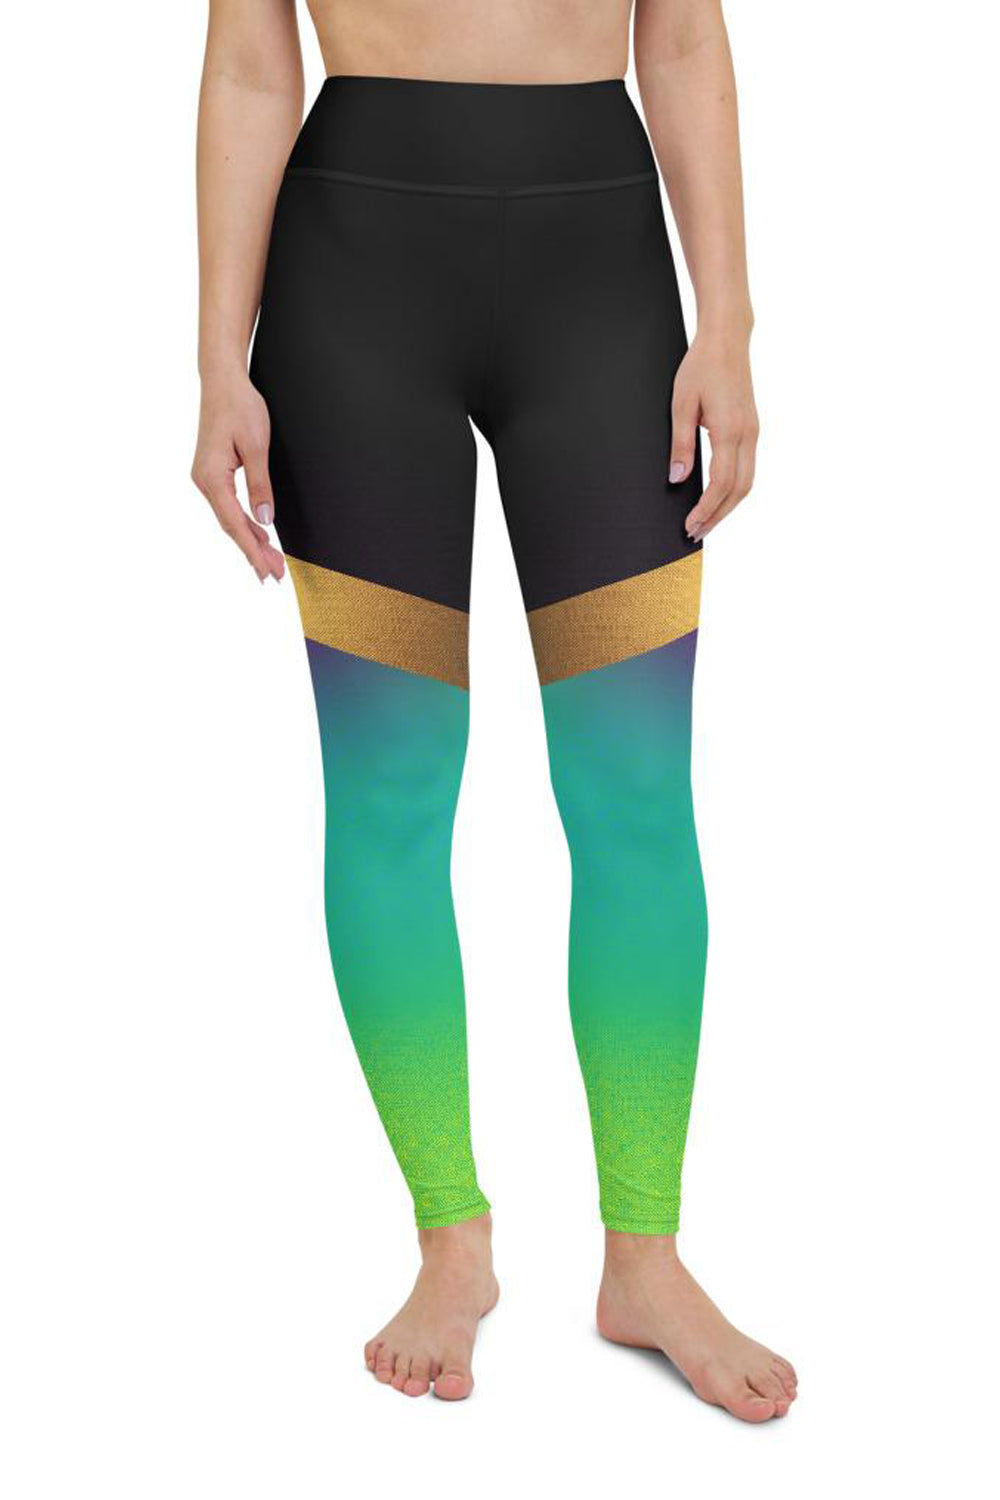 Shine Green Yoga Leggings